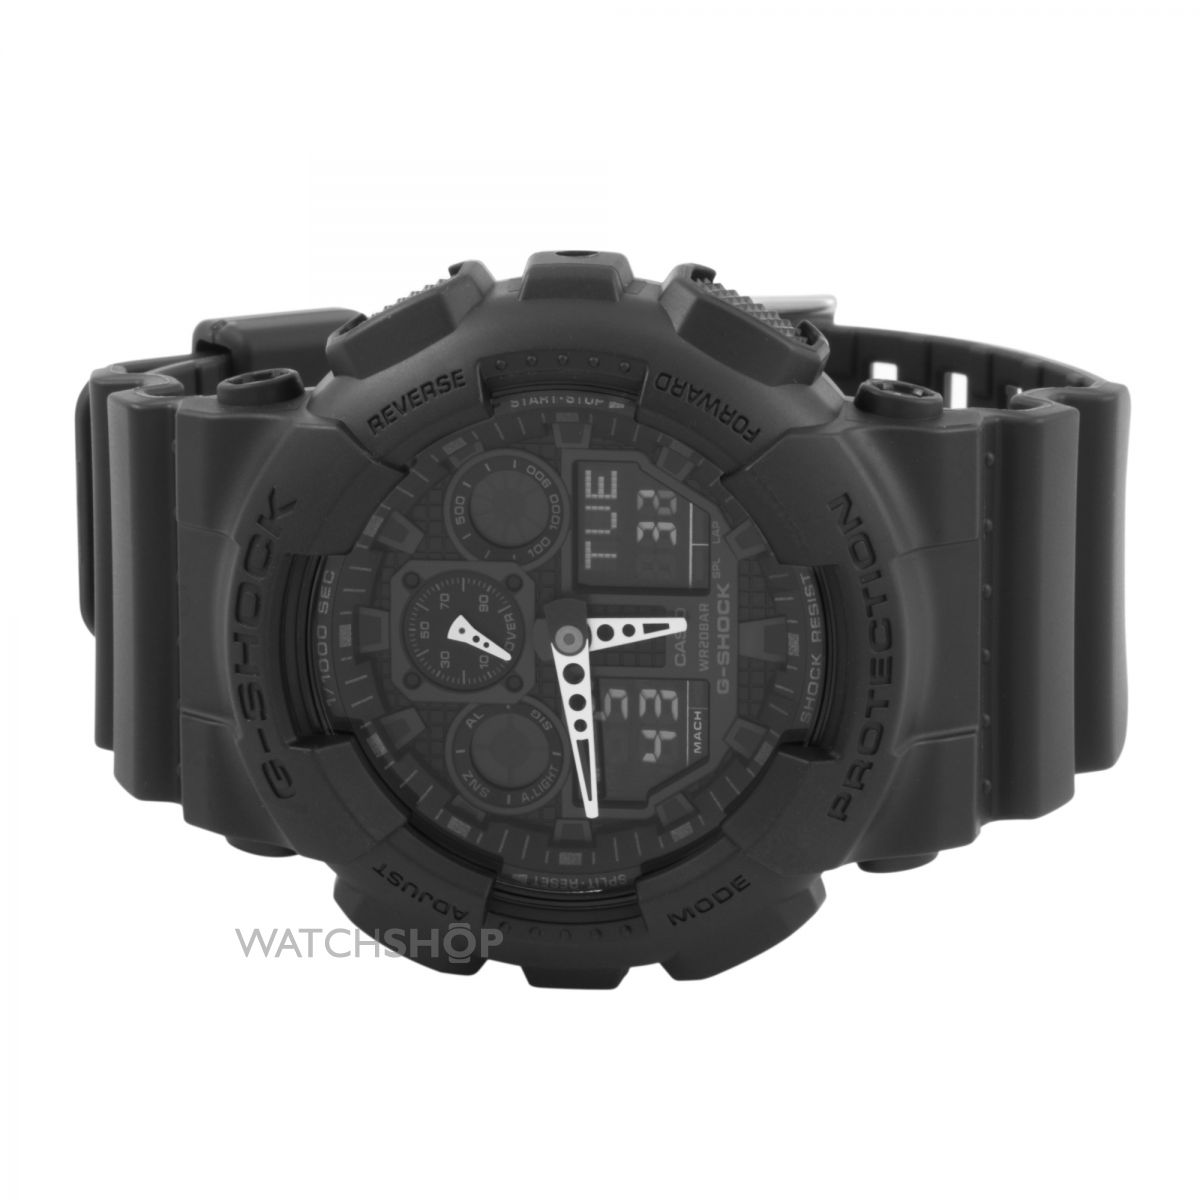 Casio G Shock Watch Ga 100 1a1d Fashion Sports Watch C9 - Relgios 27